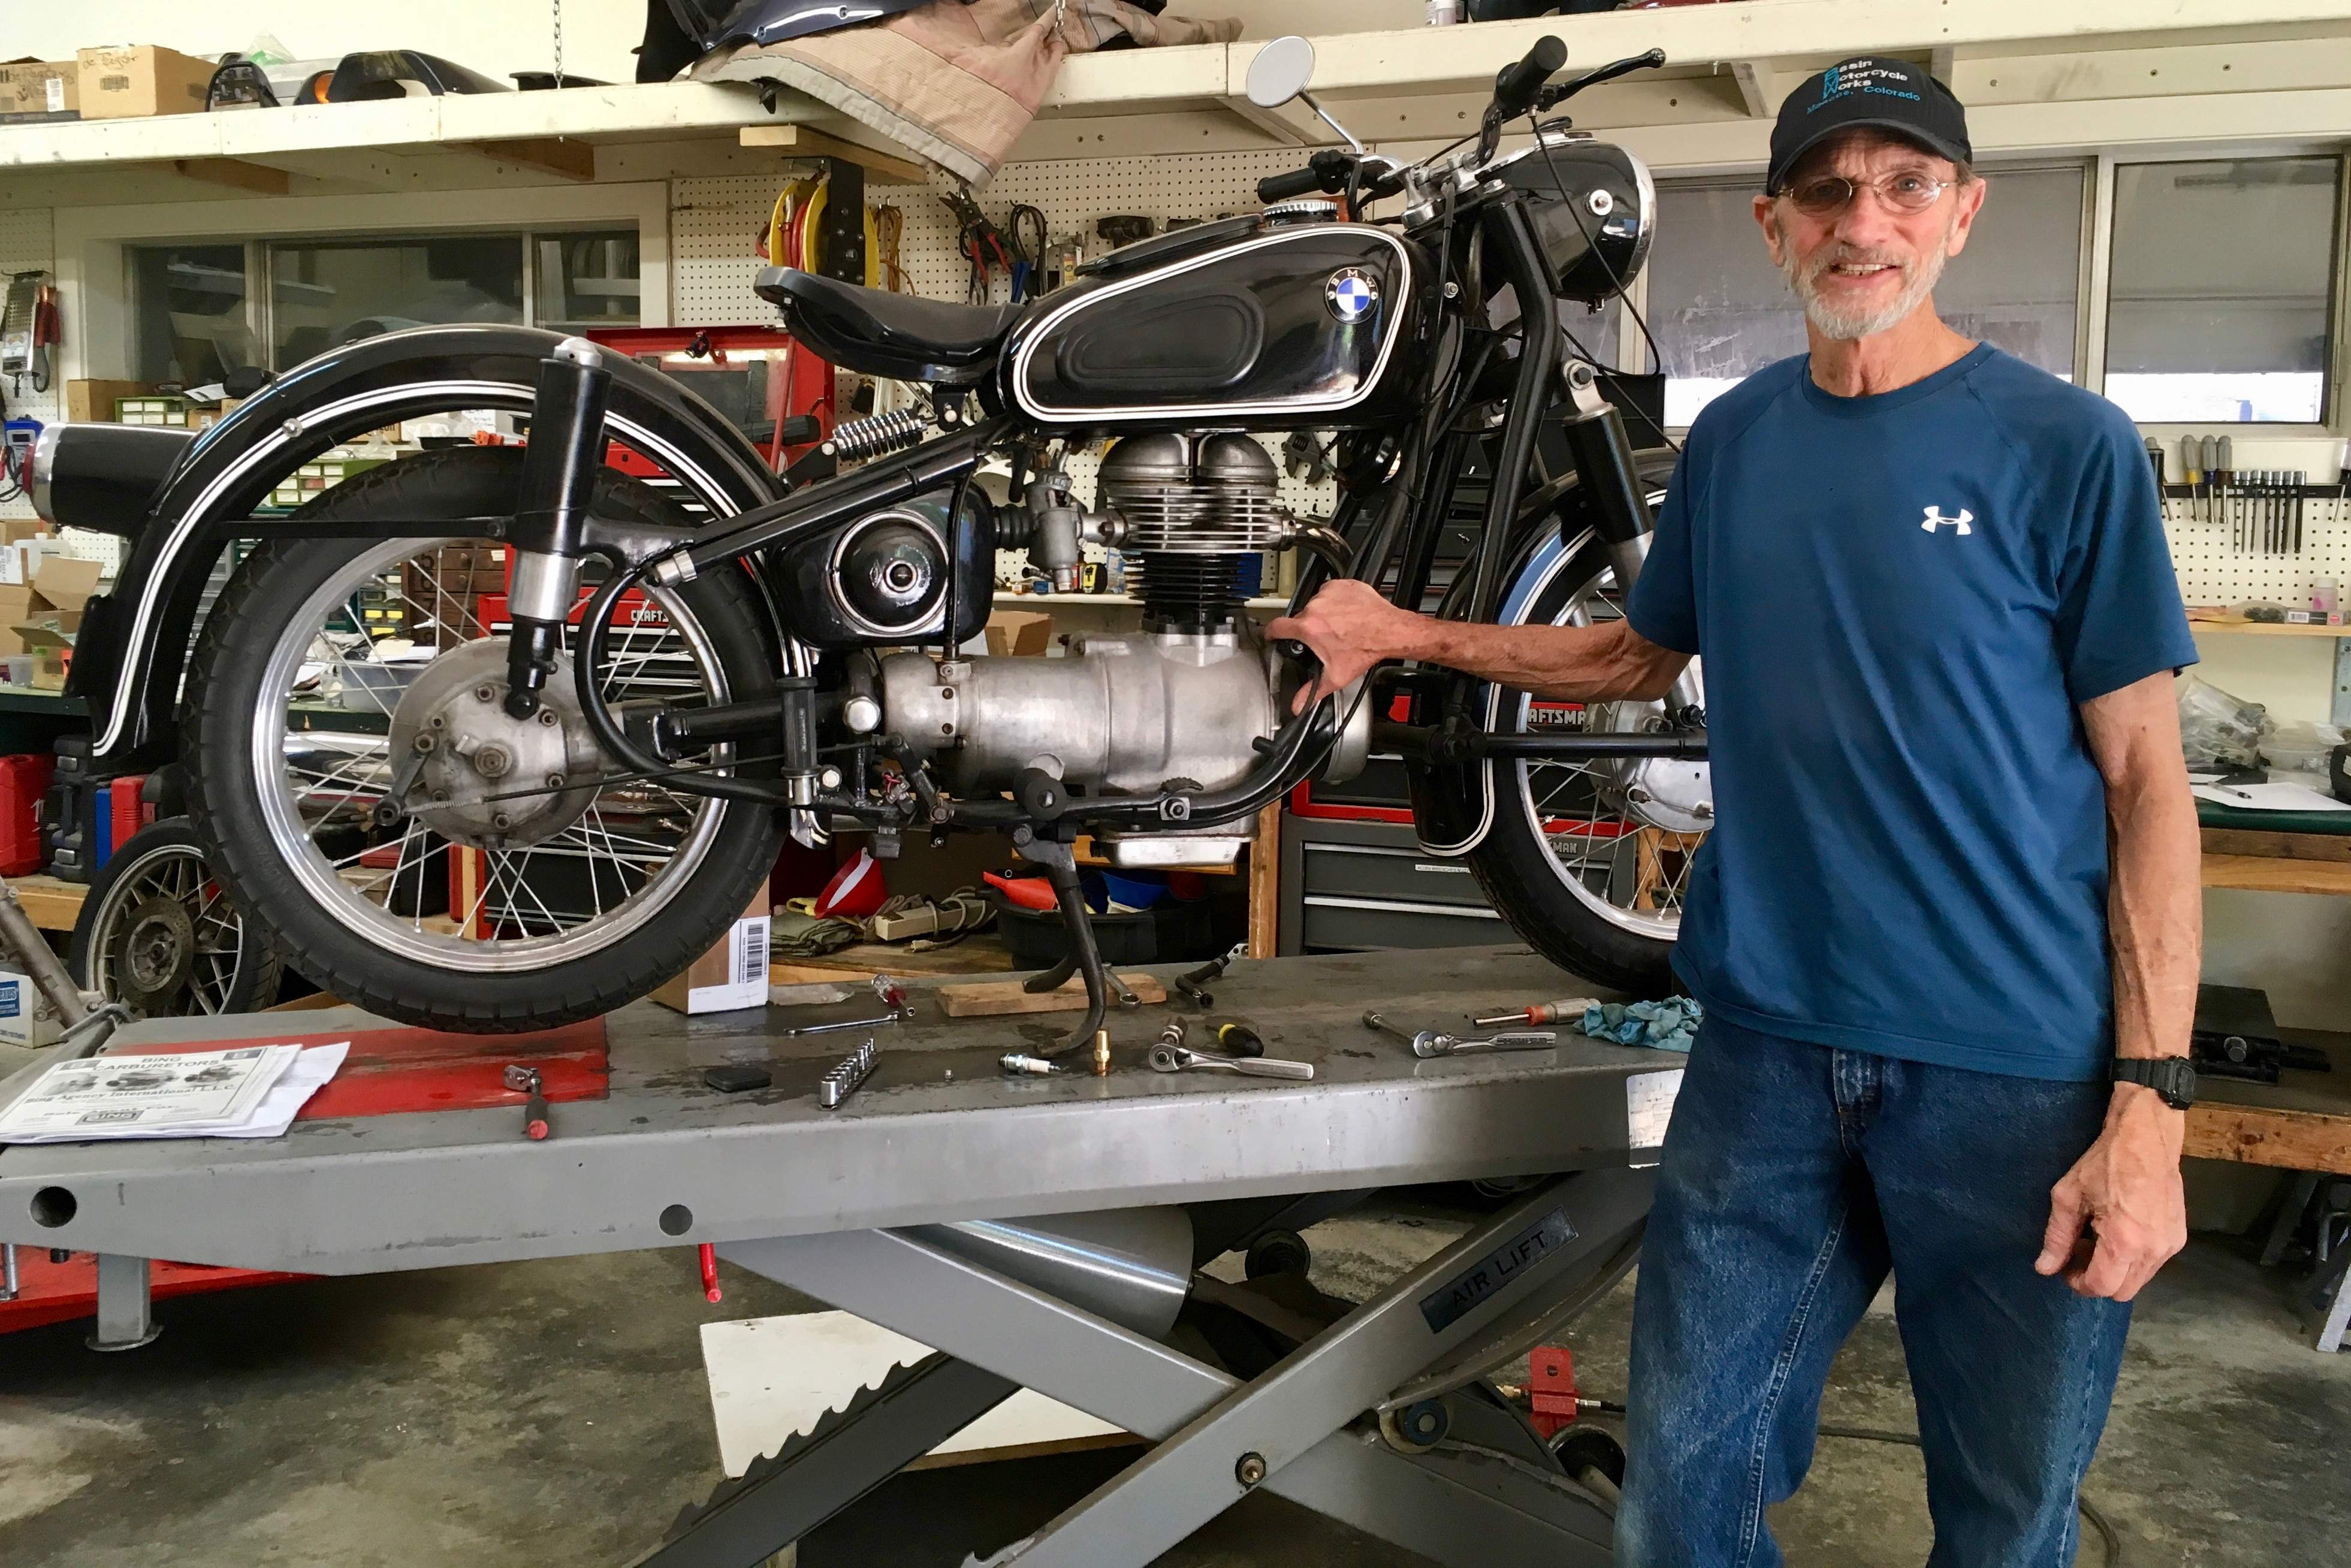 harry hill with a 1959 r26 single cylinder bmw motorcycle that hes repairing in his shop basin motorcycle works at 41 s main st in mancos